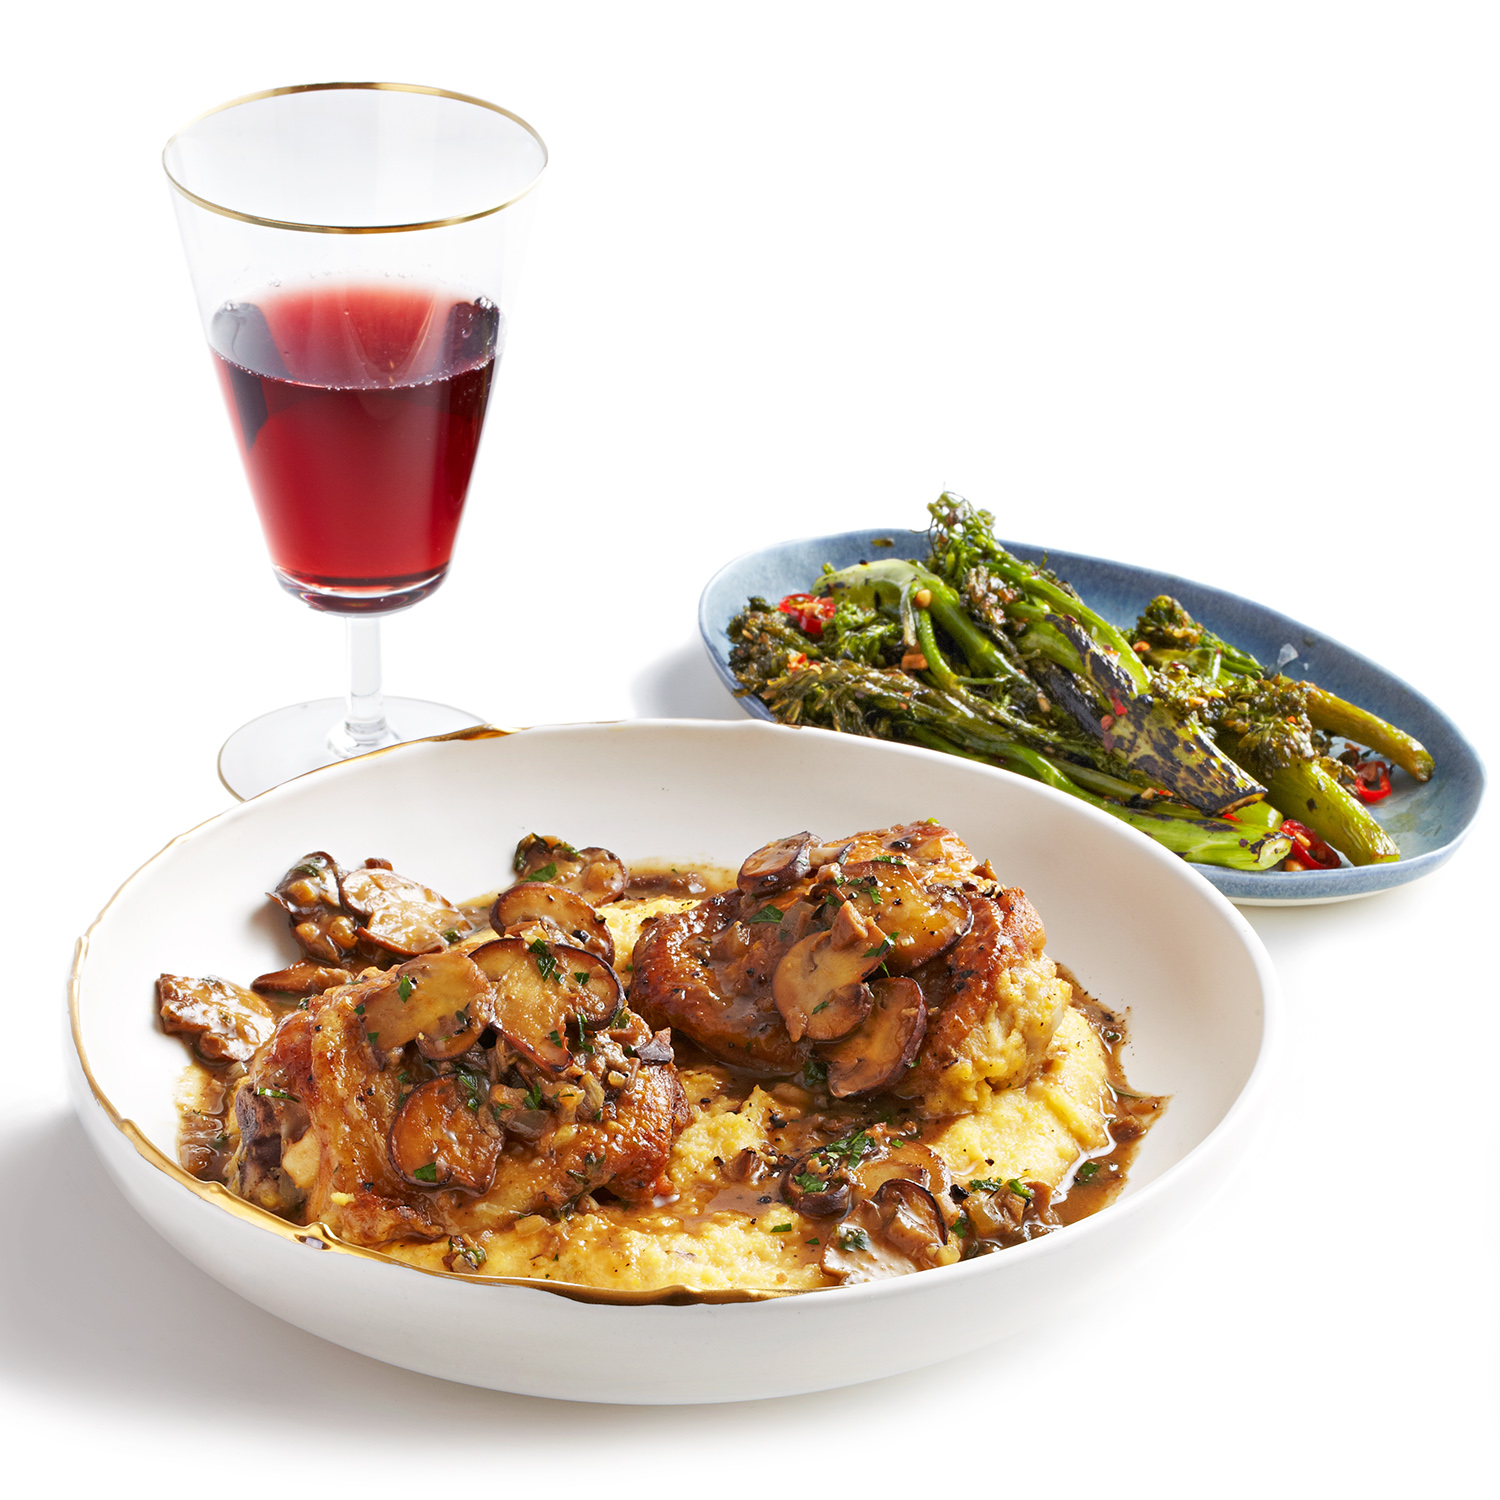 Truffle-Laced Chicken with Mushrooms, Polenta & Roasted Broccolini